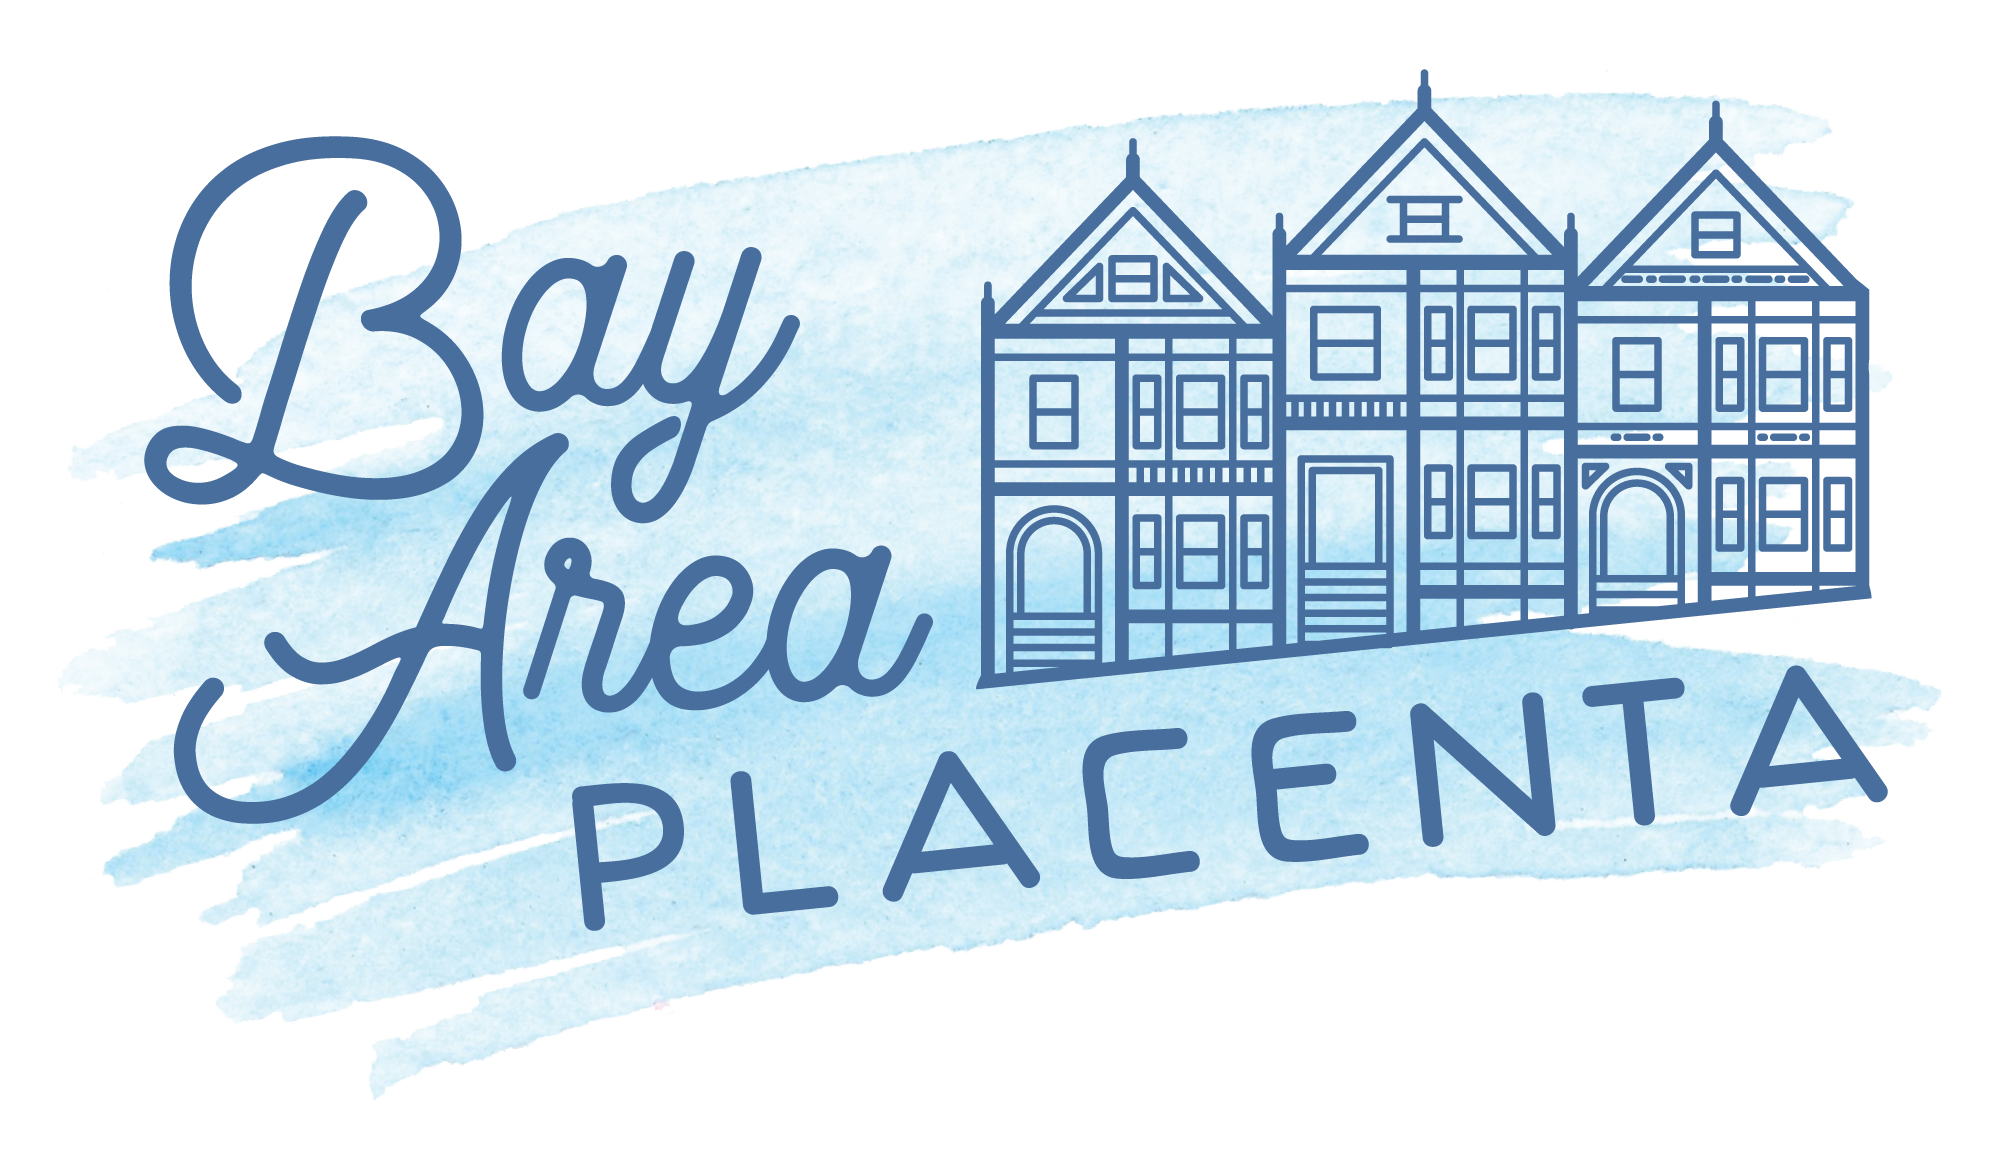 Bay Area Placenta